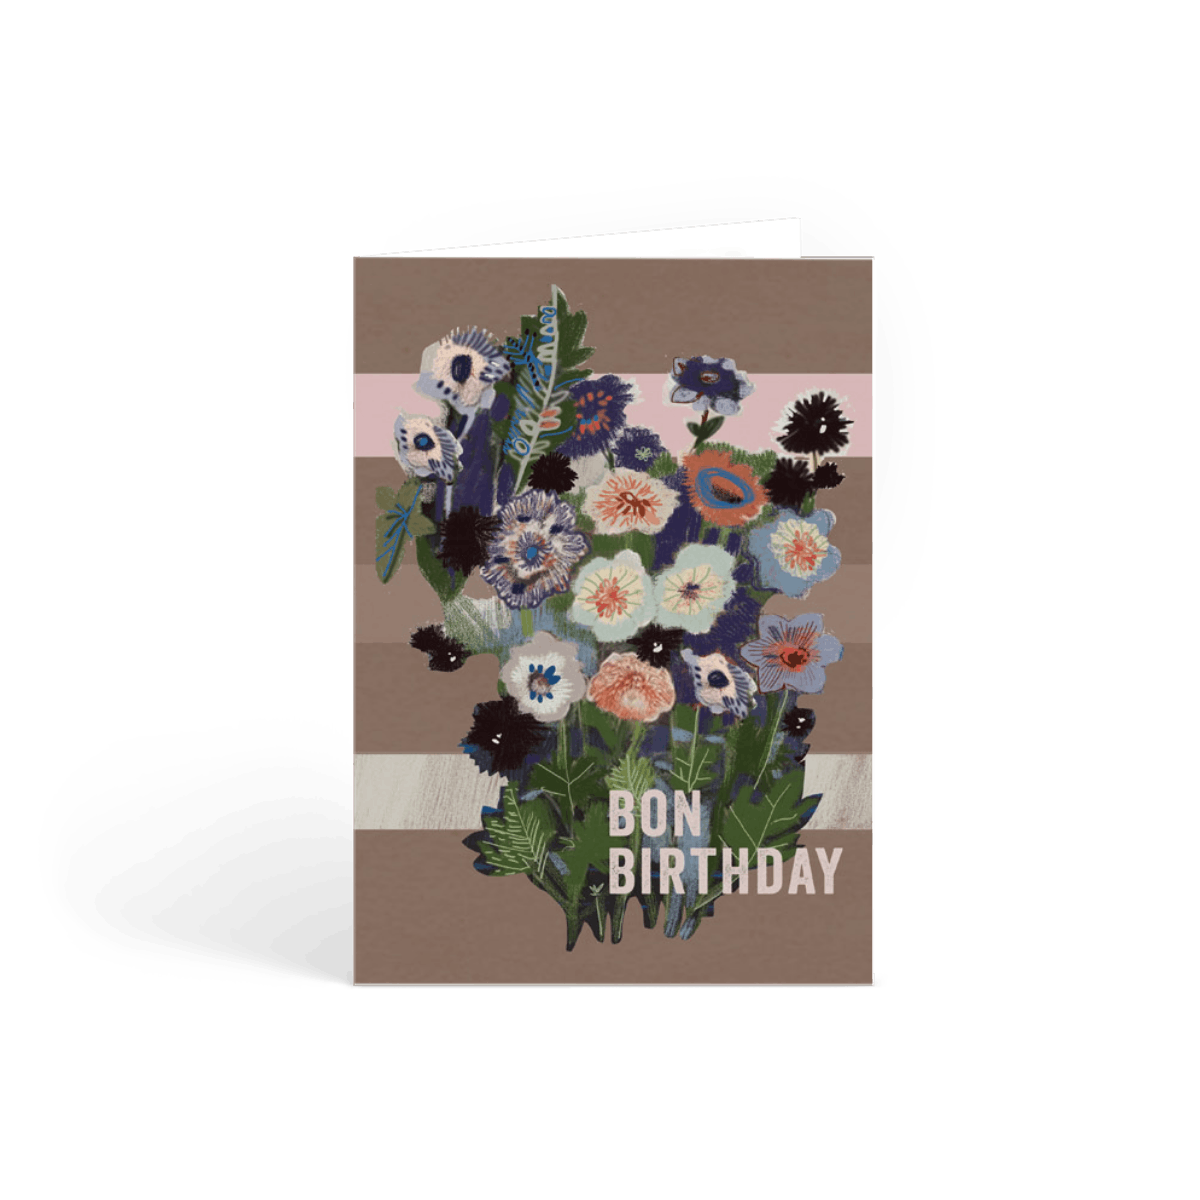 Https%3a%2f%2fwww.papier.com%2fproduct image%2f28967%2f2%2fbon birthday flowers 7276 front 1510742780.png?ixlib=rb 1.1